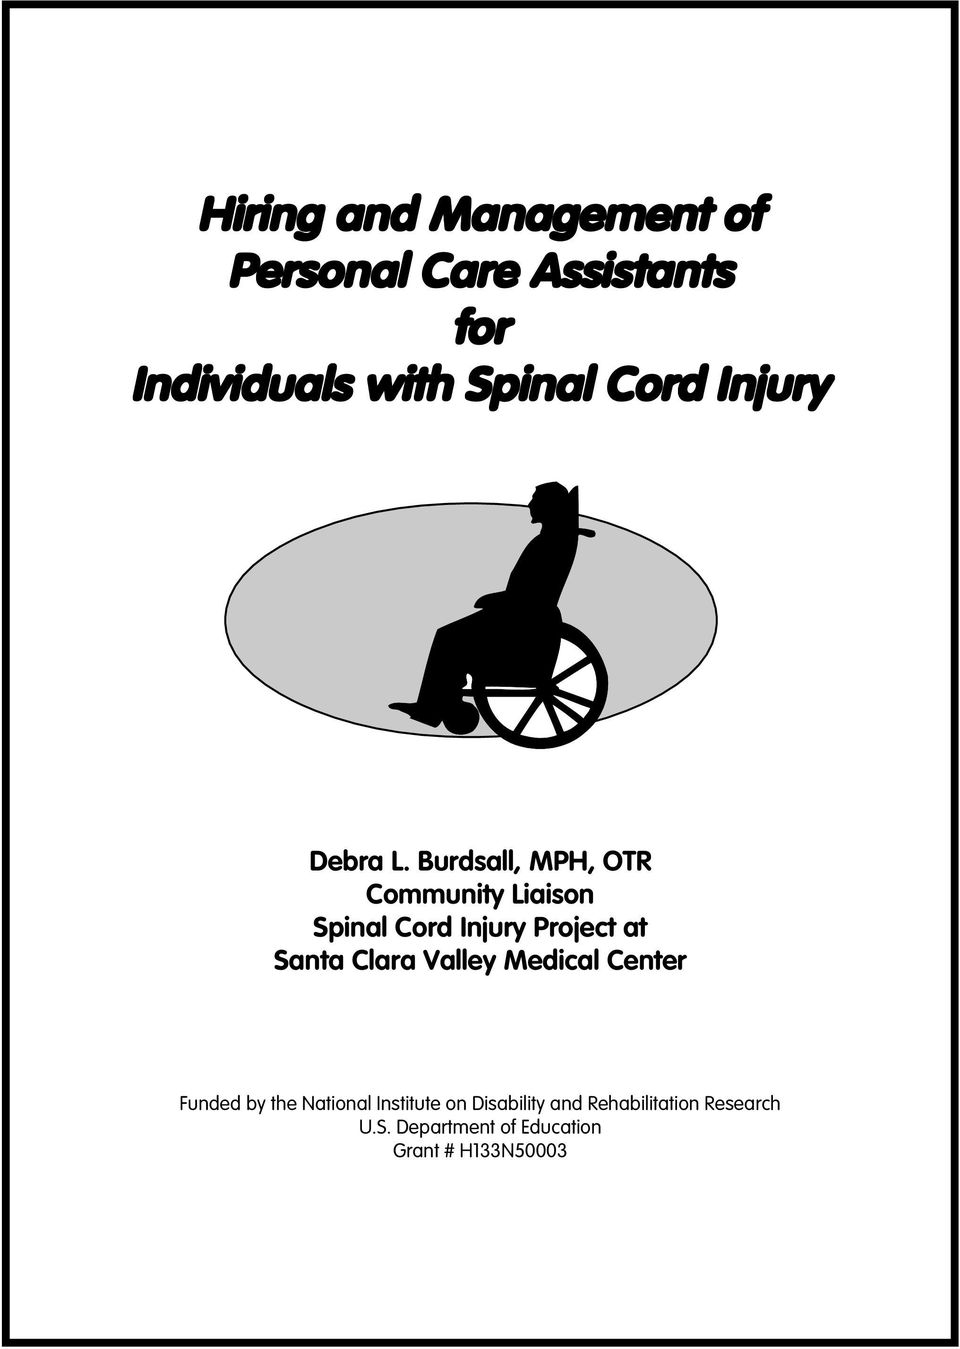 Burdsall, MPH, OTR Community Liaison Spinal Cord Injury Project at Santa Clara